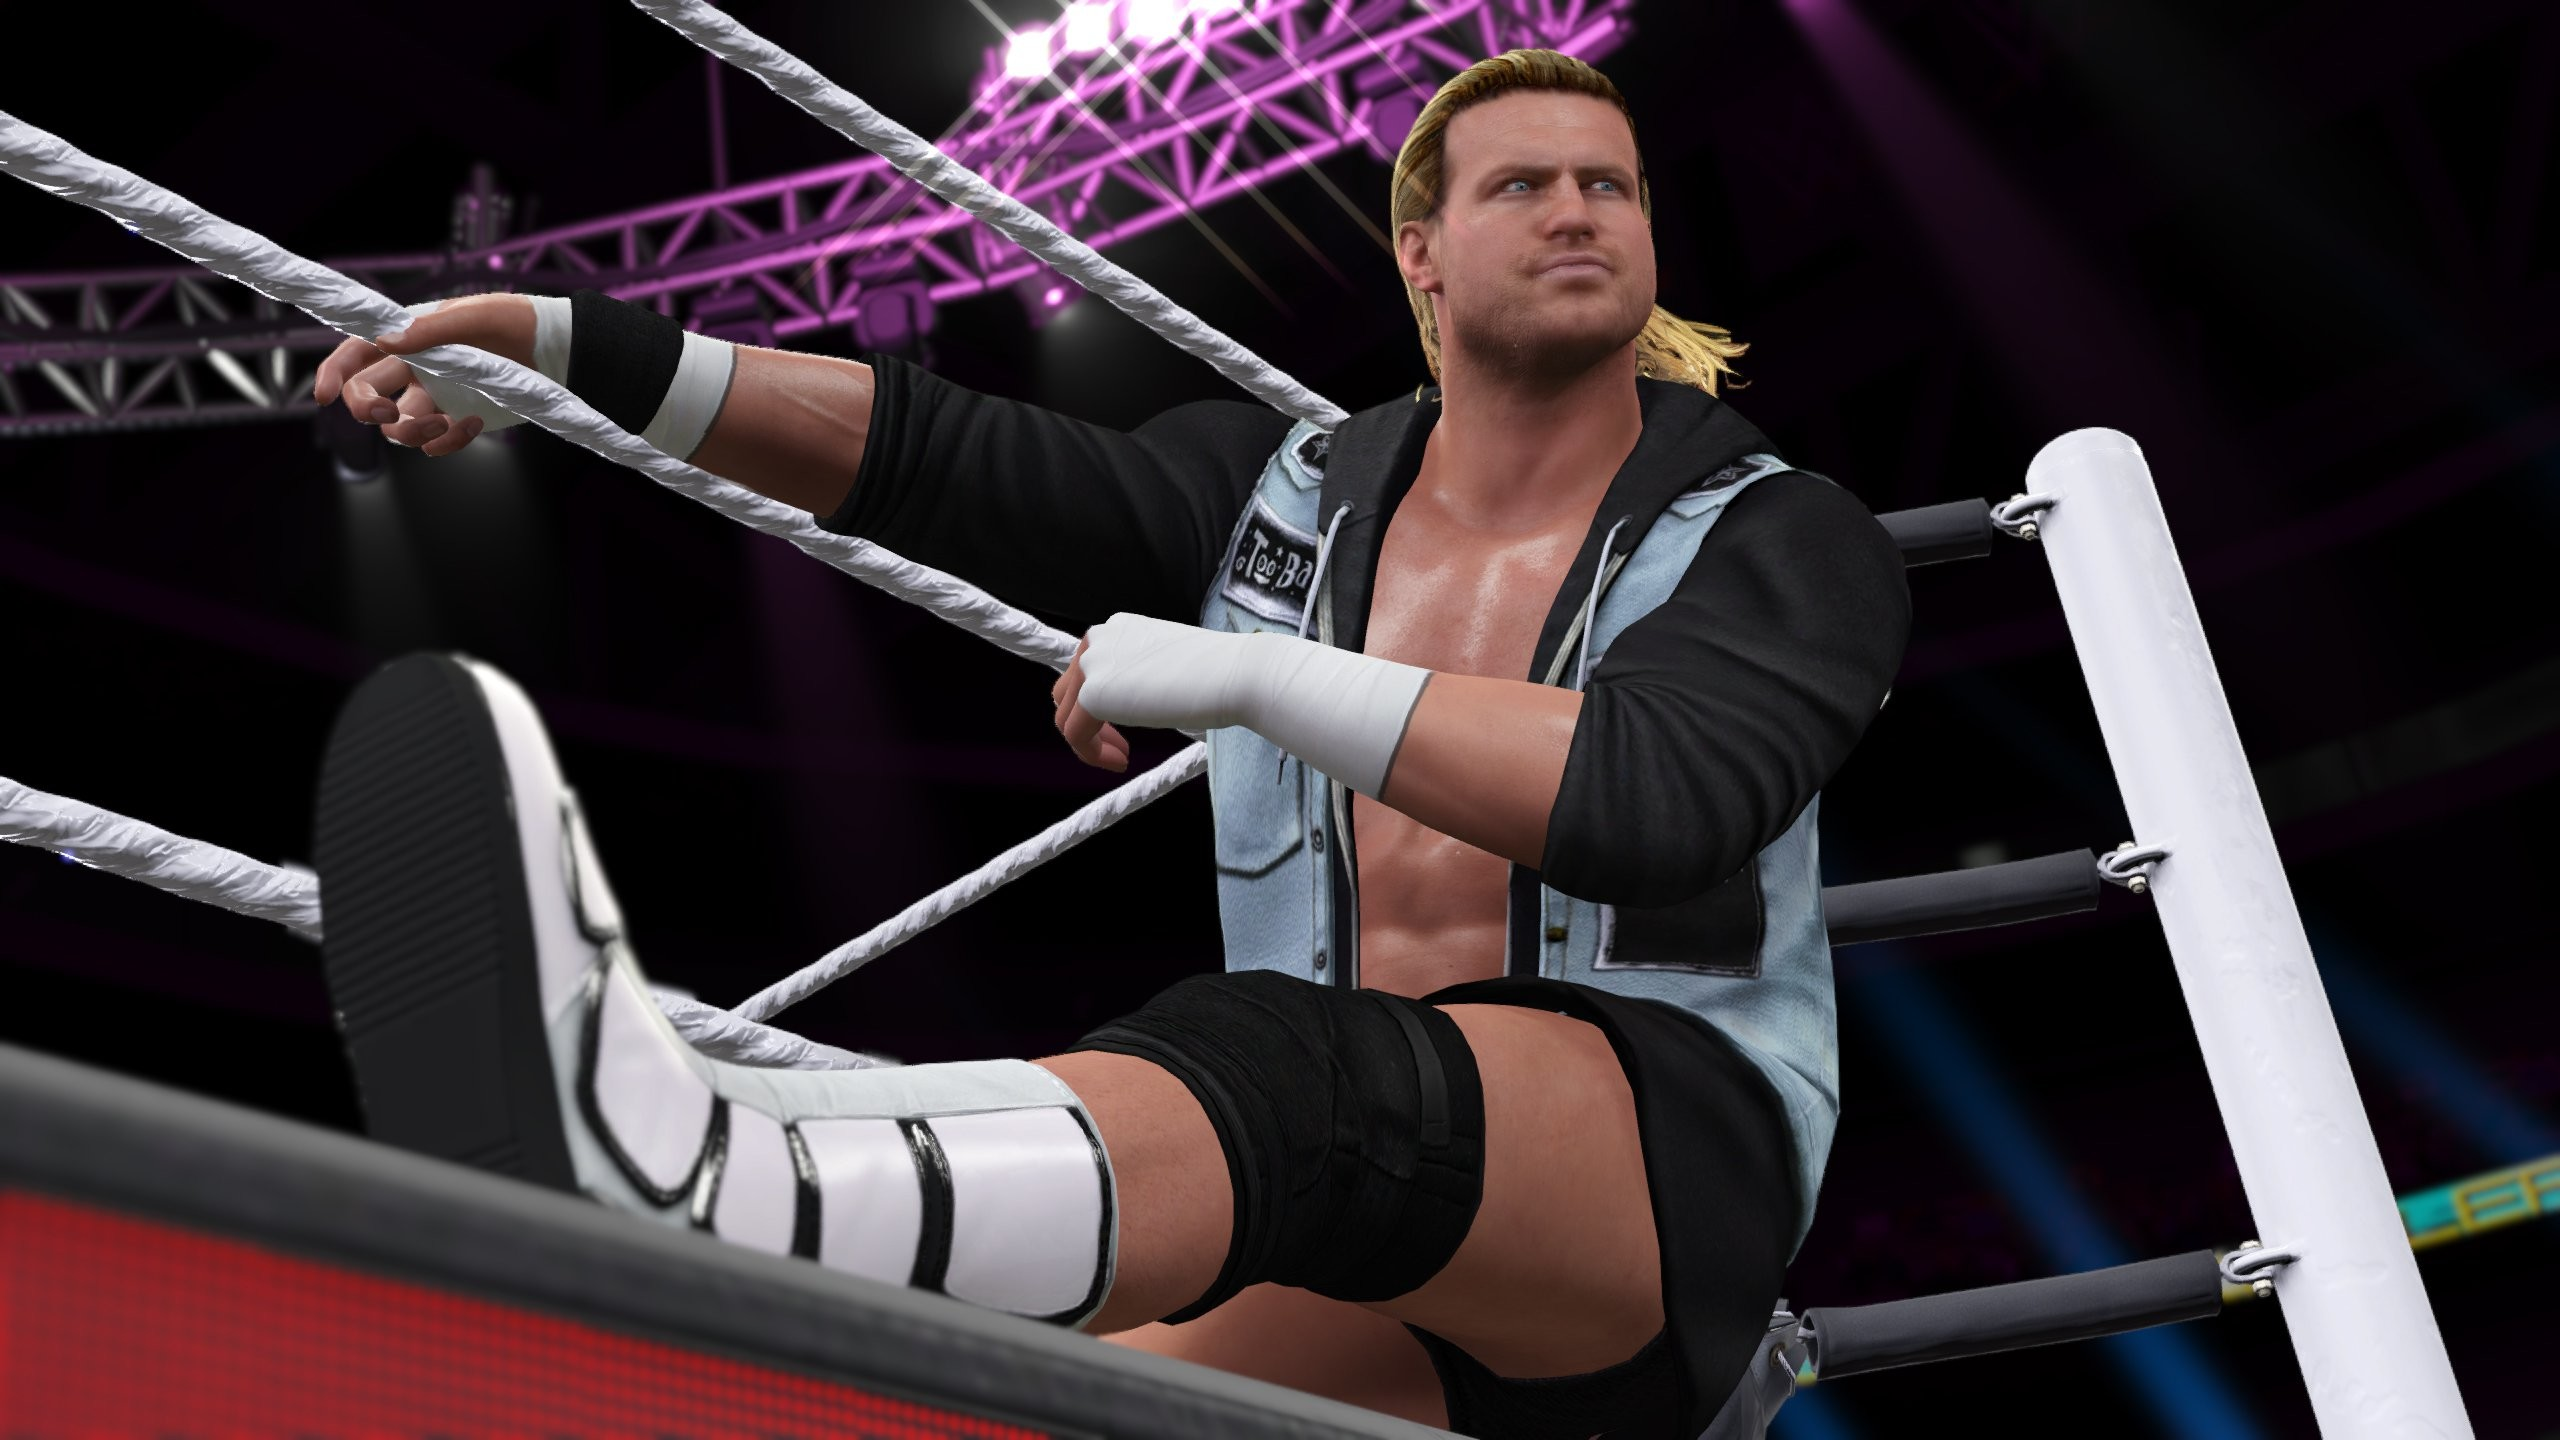 WWE 2K16 Wallpaper 4. We were unable to load Disqus. If you are a moderator  please see our troubleshooting guide.